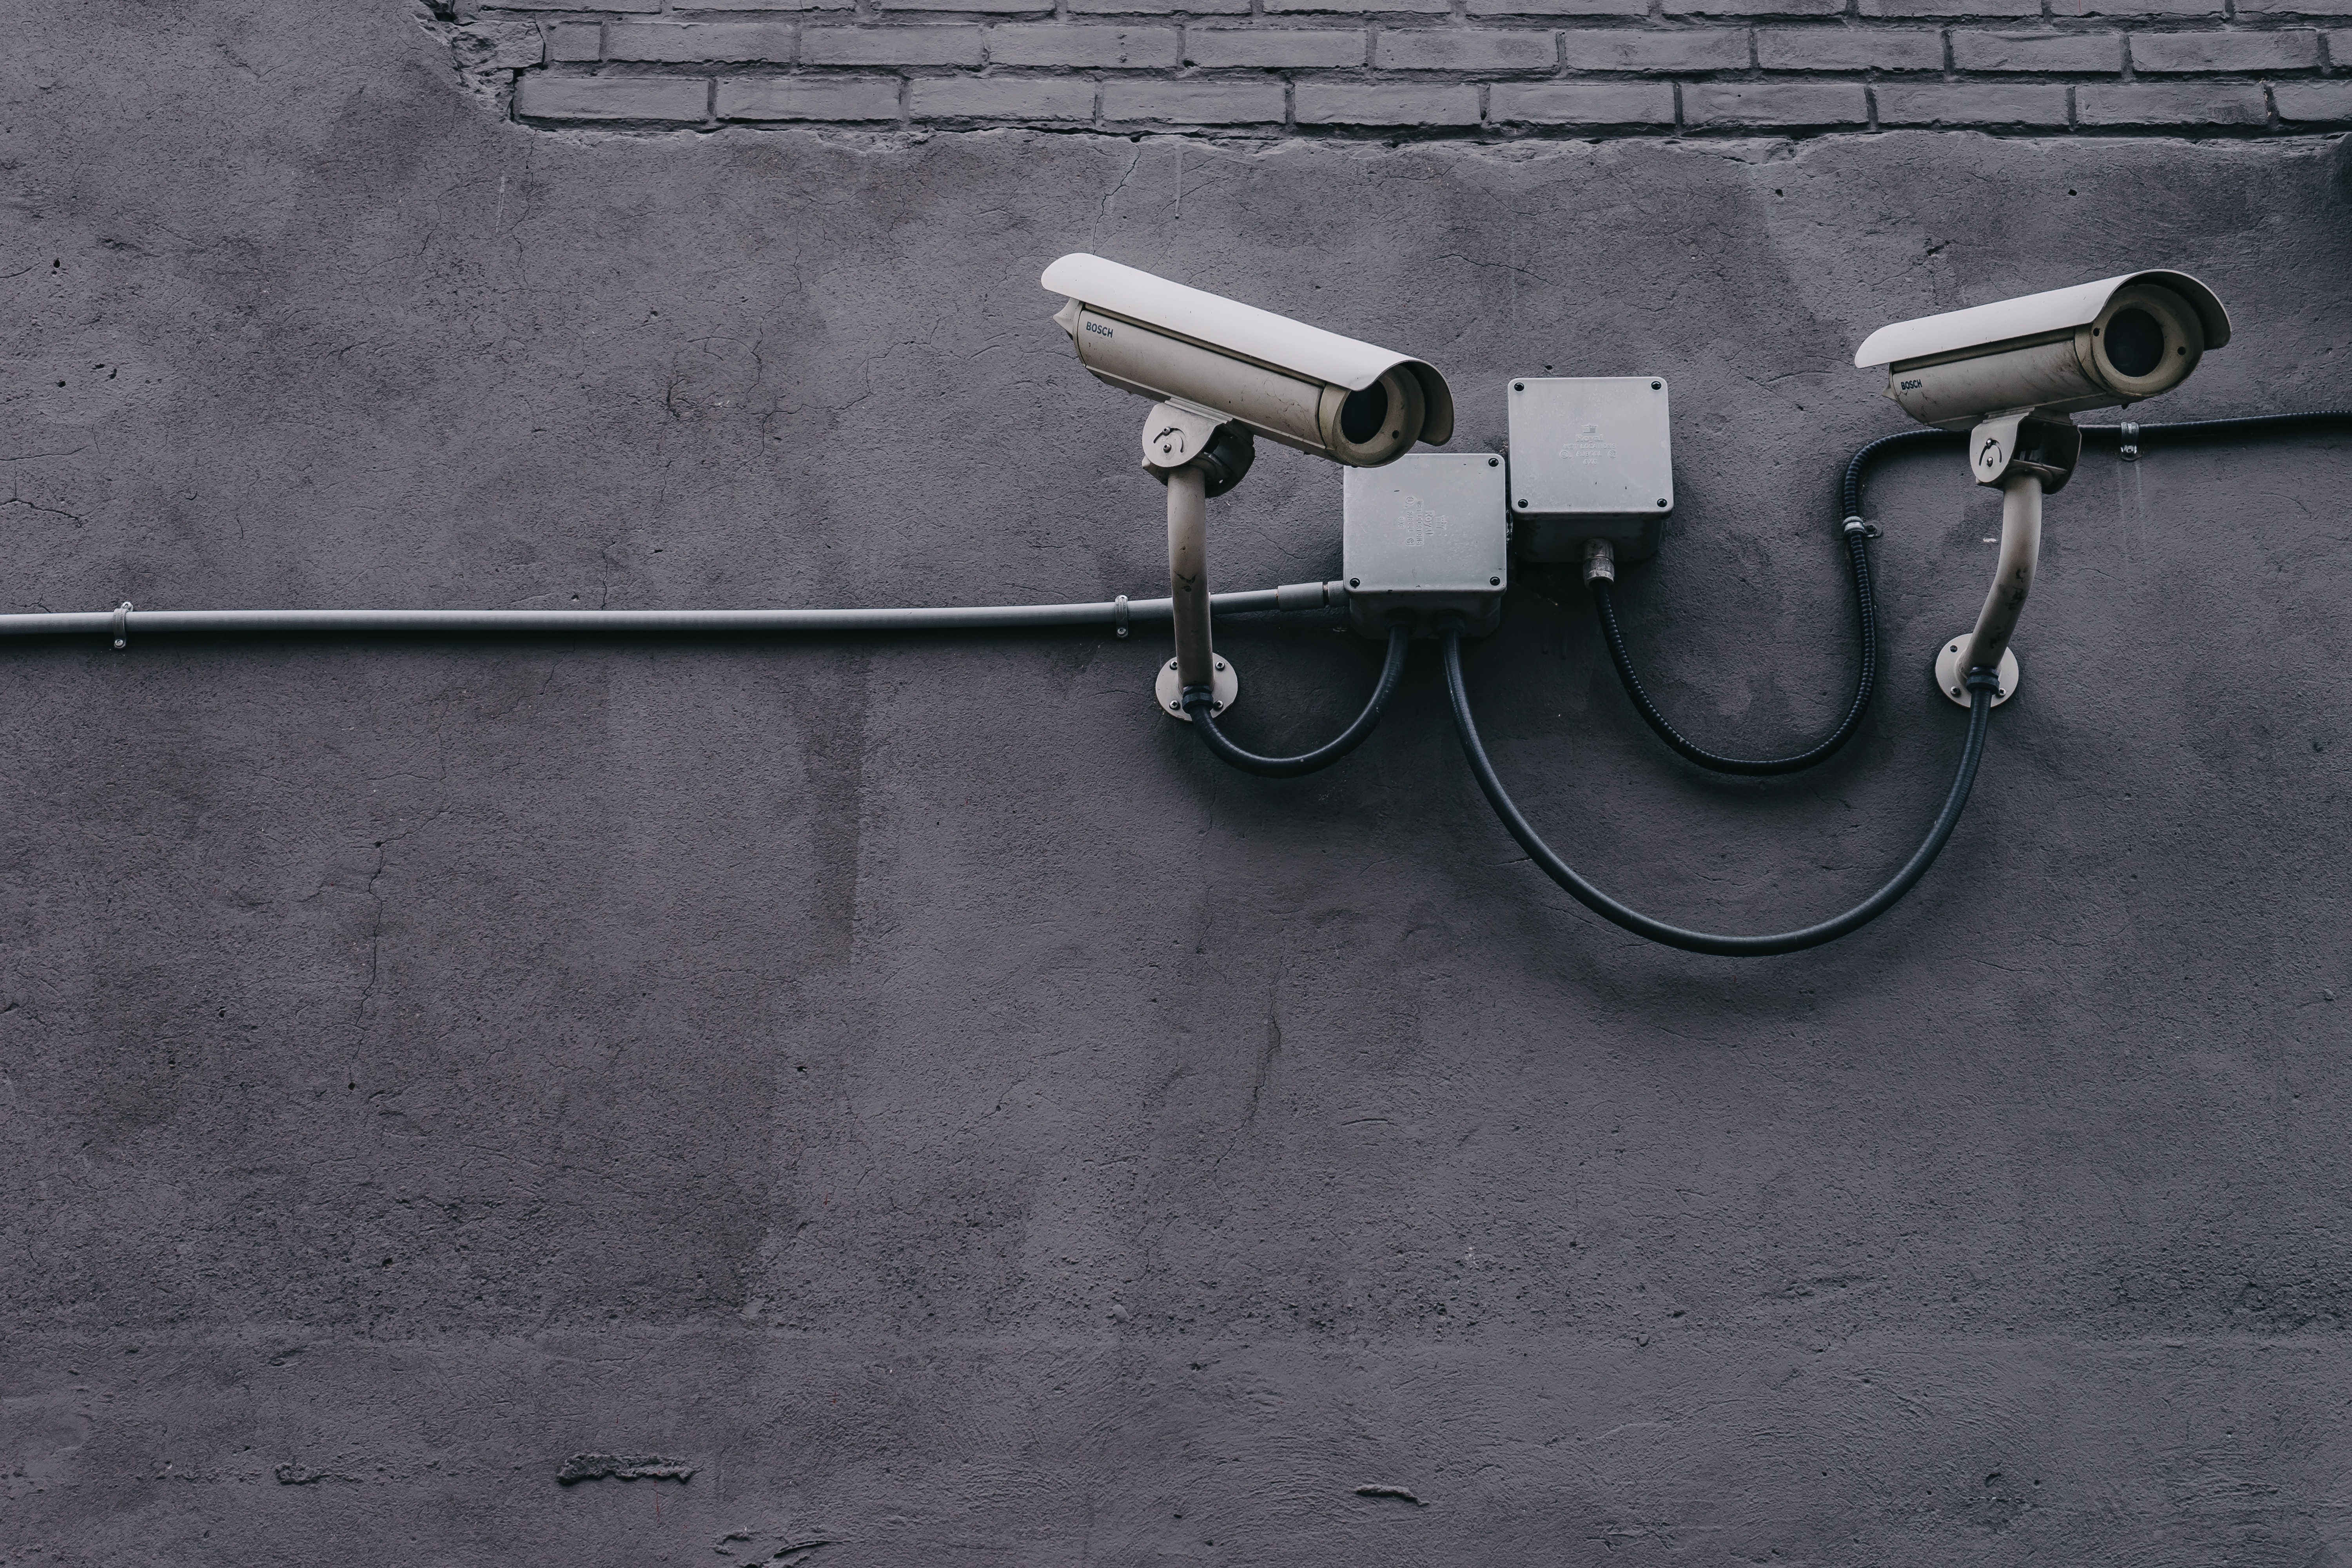 Two security cameras on a wall